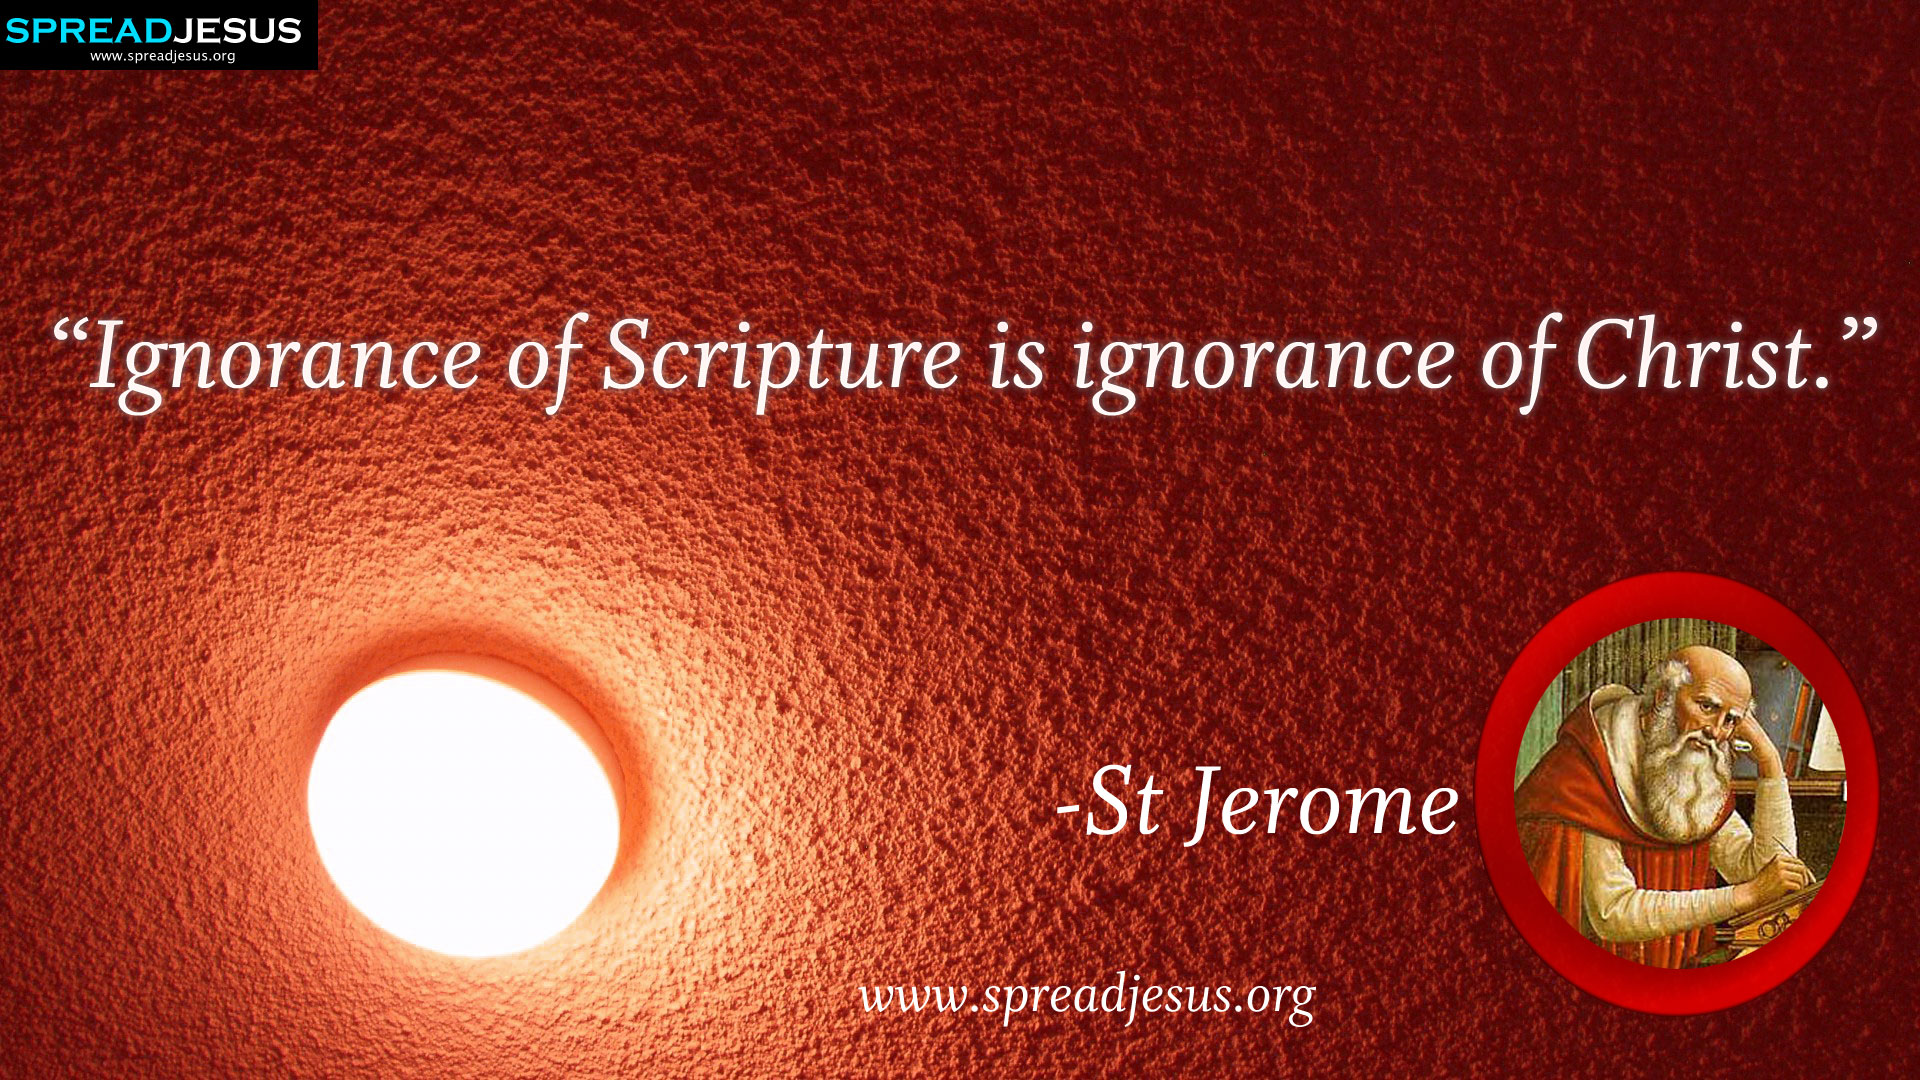 "St Jerome:St Jerome QUOTES HD-WALLPAPERS DOWNLOAD:CATHOLIC SAINT QUOTES HD-WALLPAPERS DOWNLOAD-""Ignorance of Scripture is ignorance of Christ."" - St Jerome-spreadjesus.org"